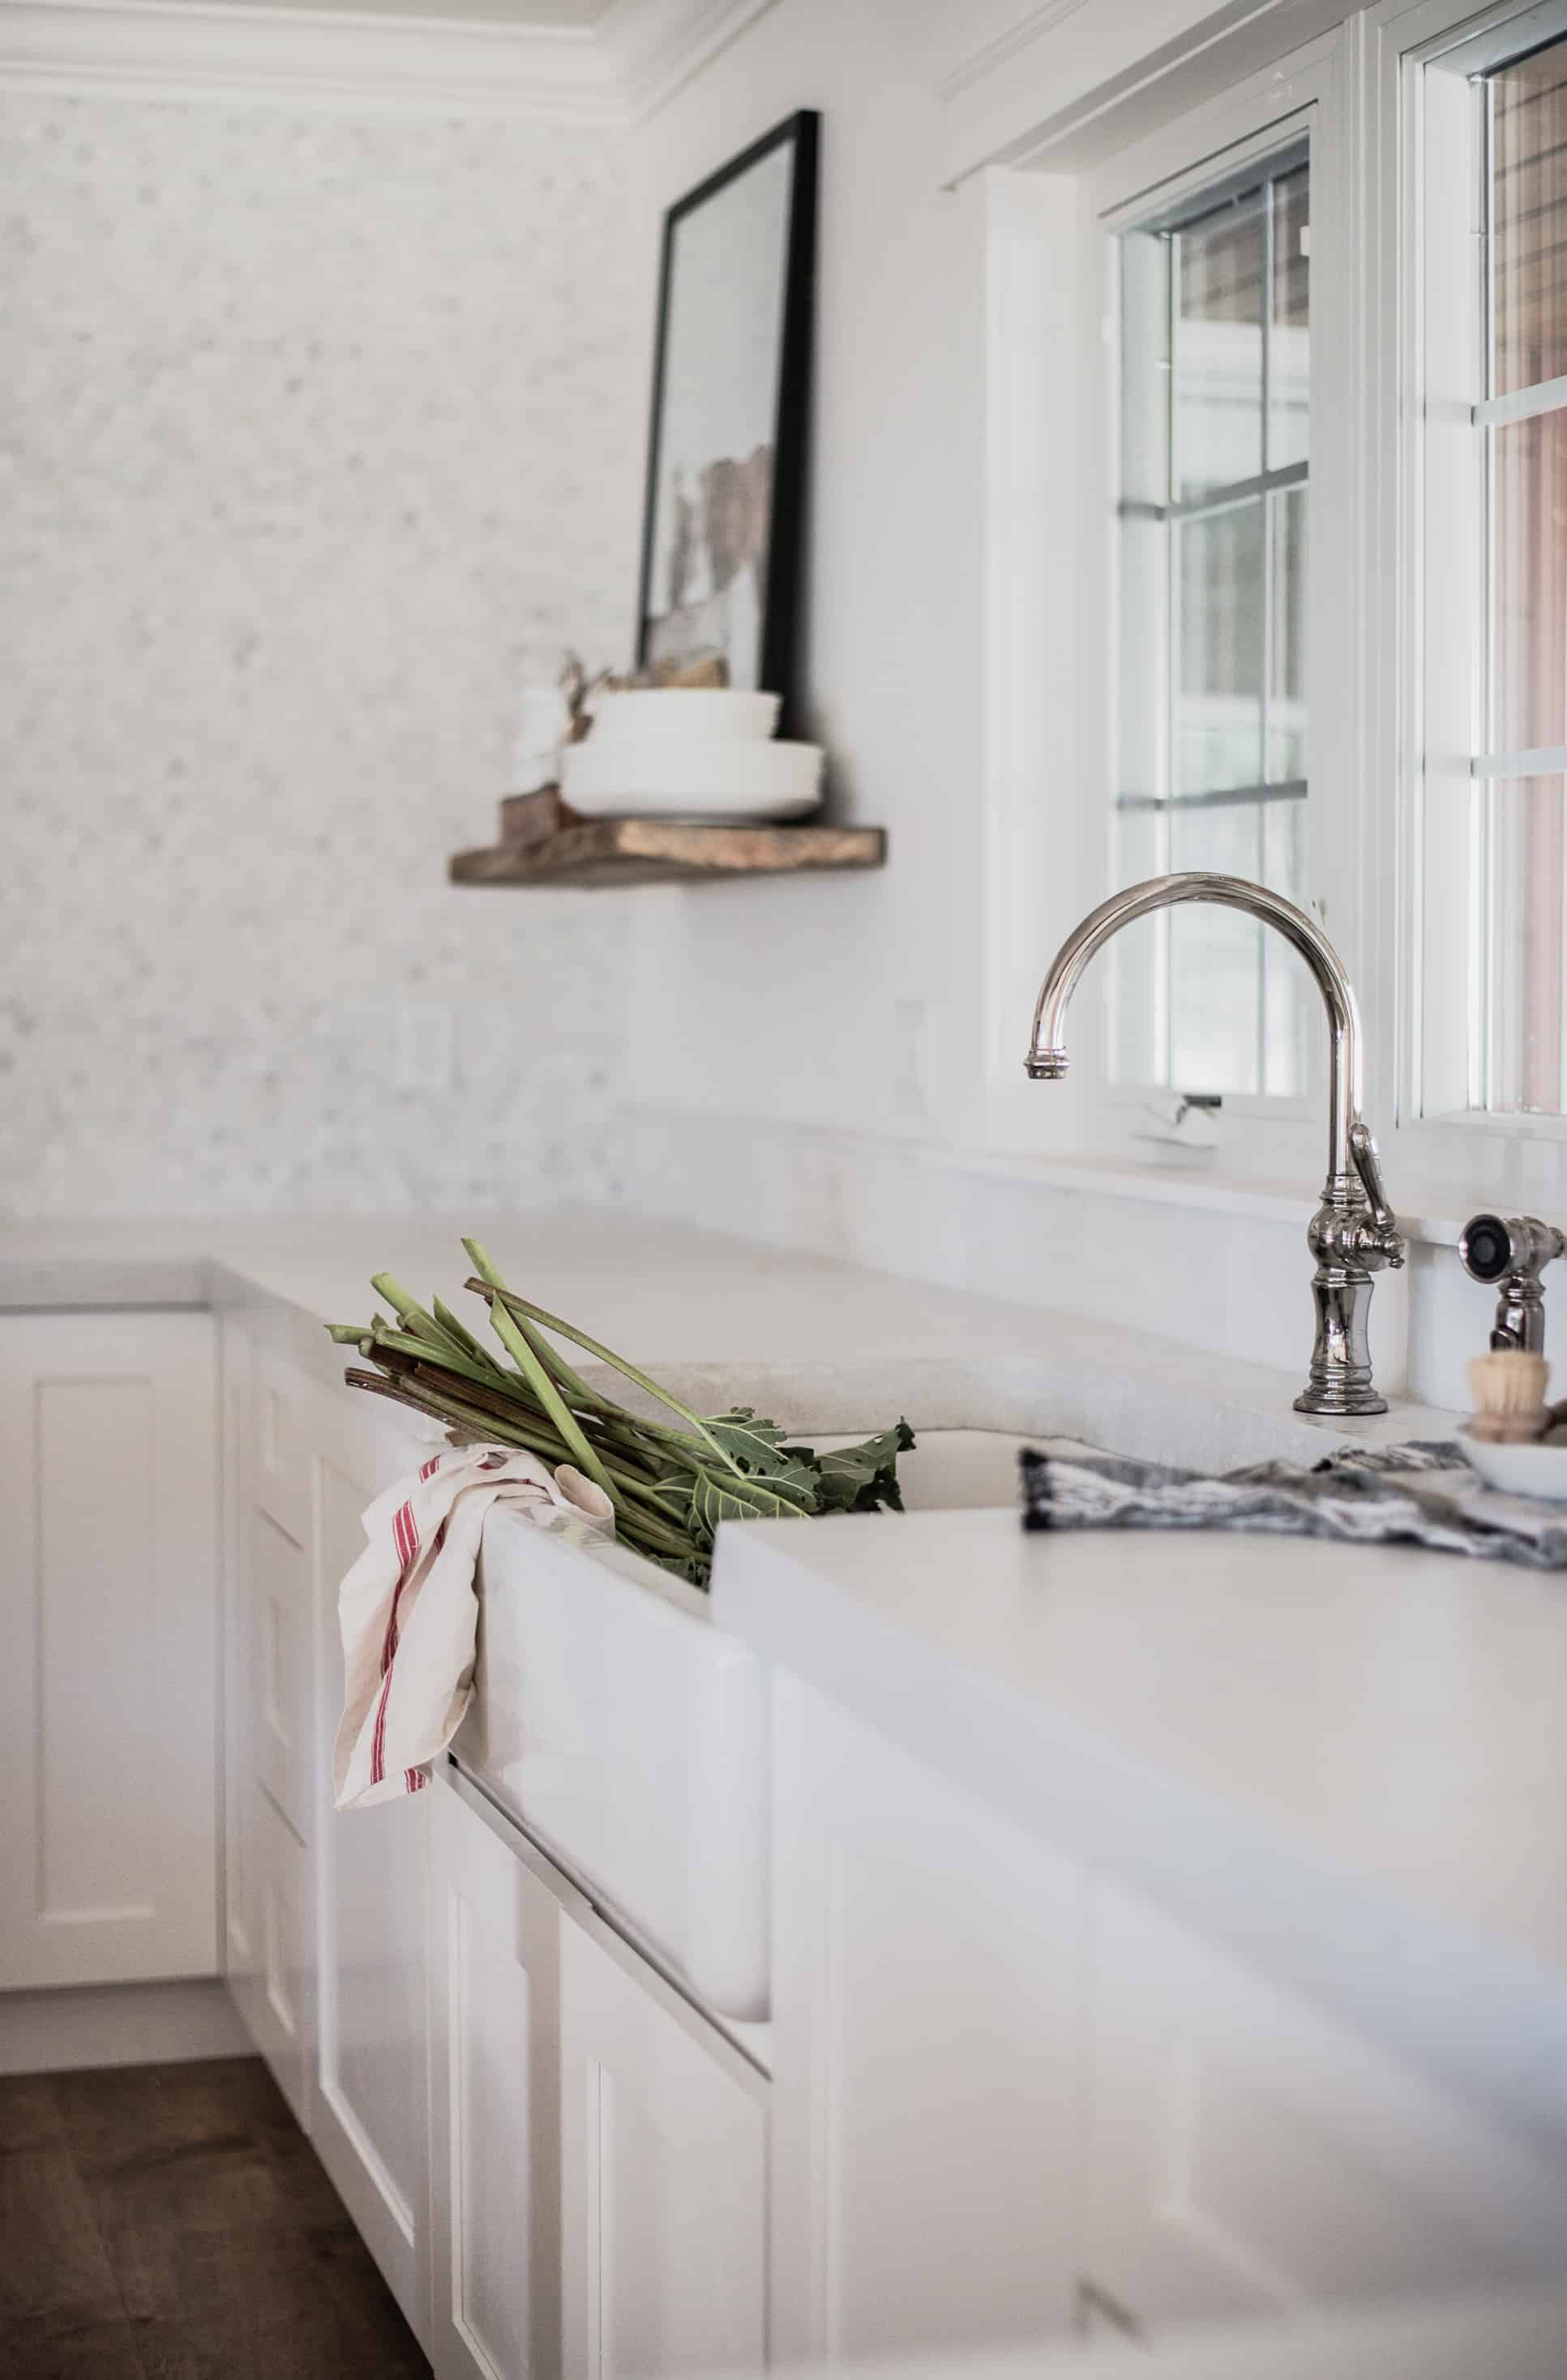 White concrete countertops are a beautiful organic element in a kitchen, after pouring, they must be properly sealed for longevity!